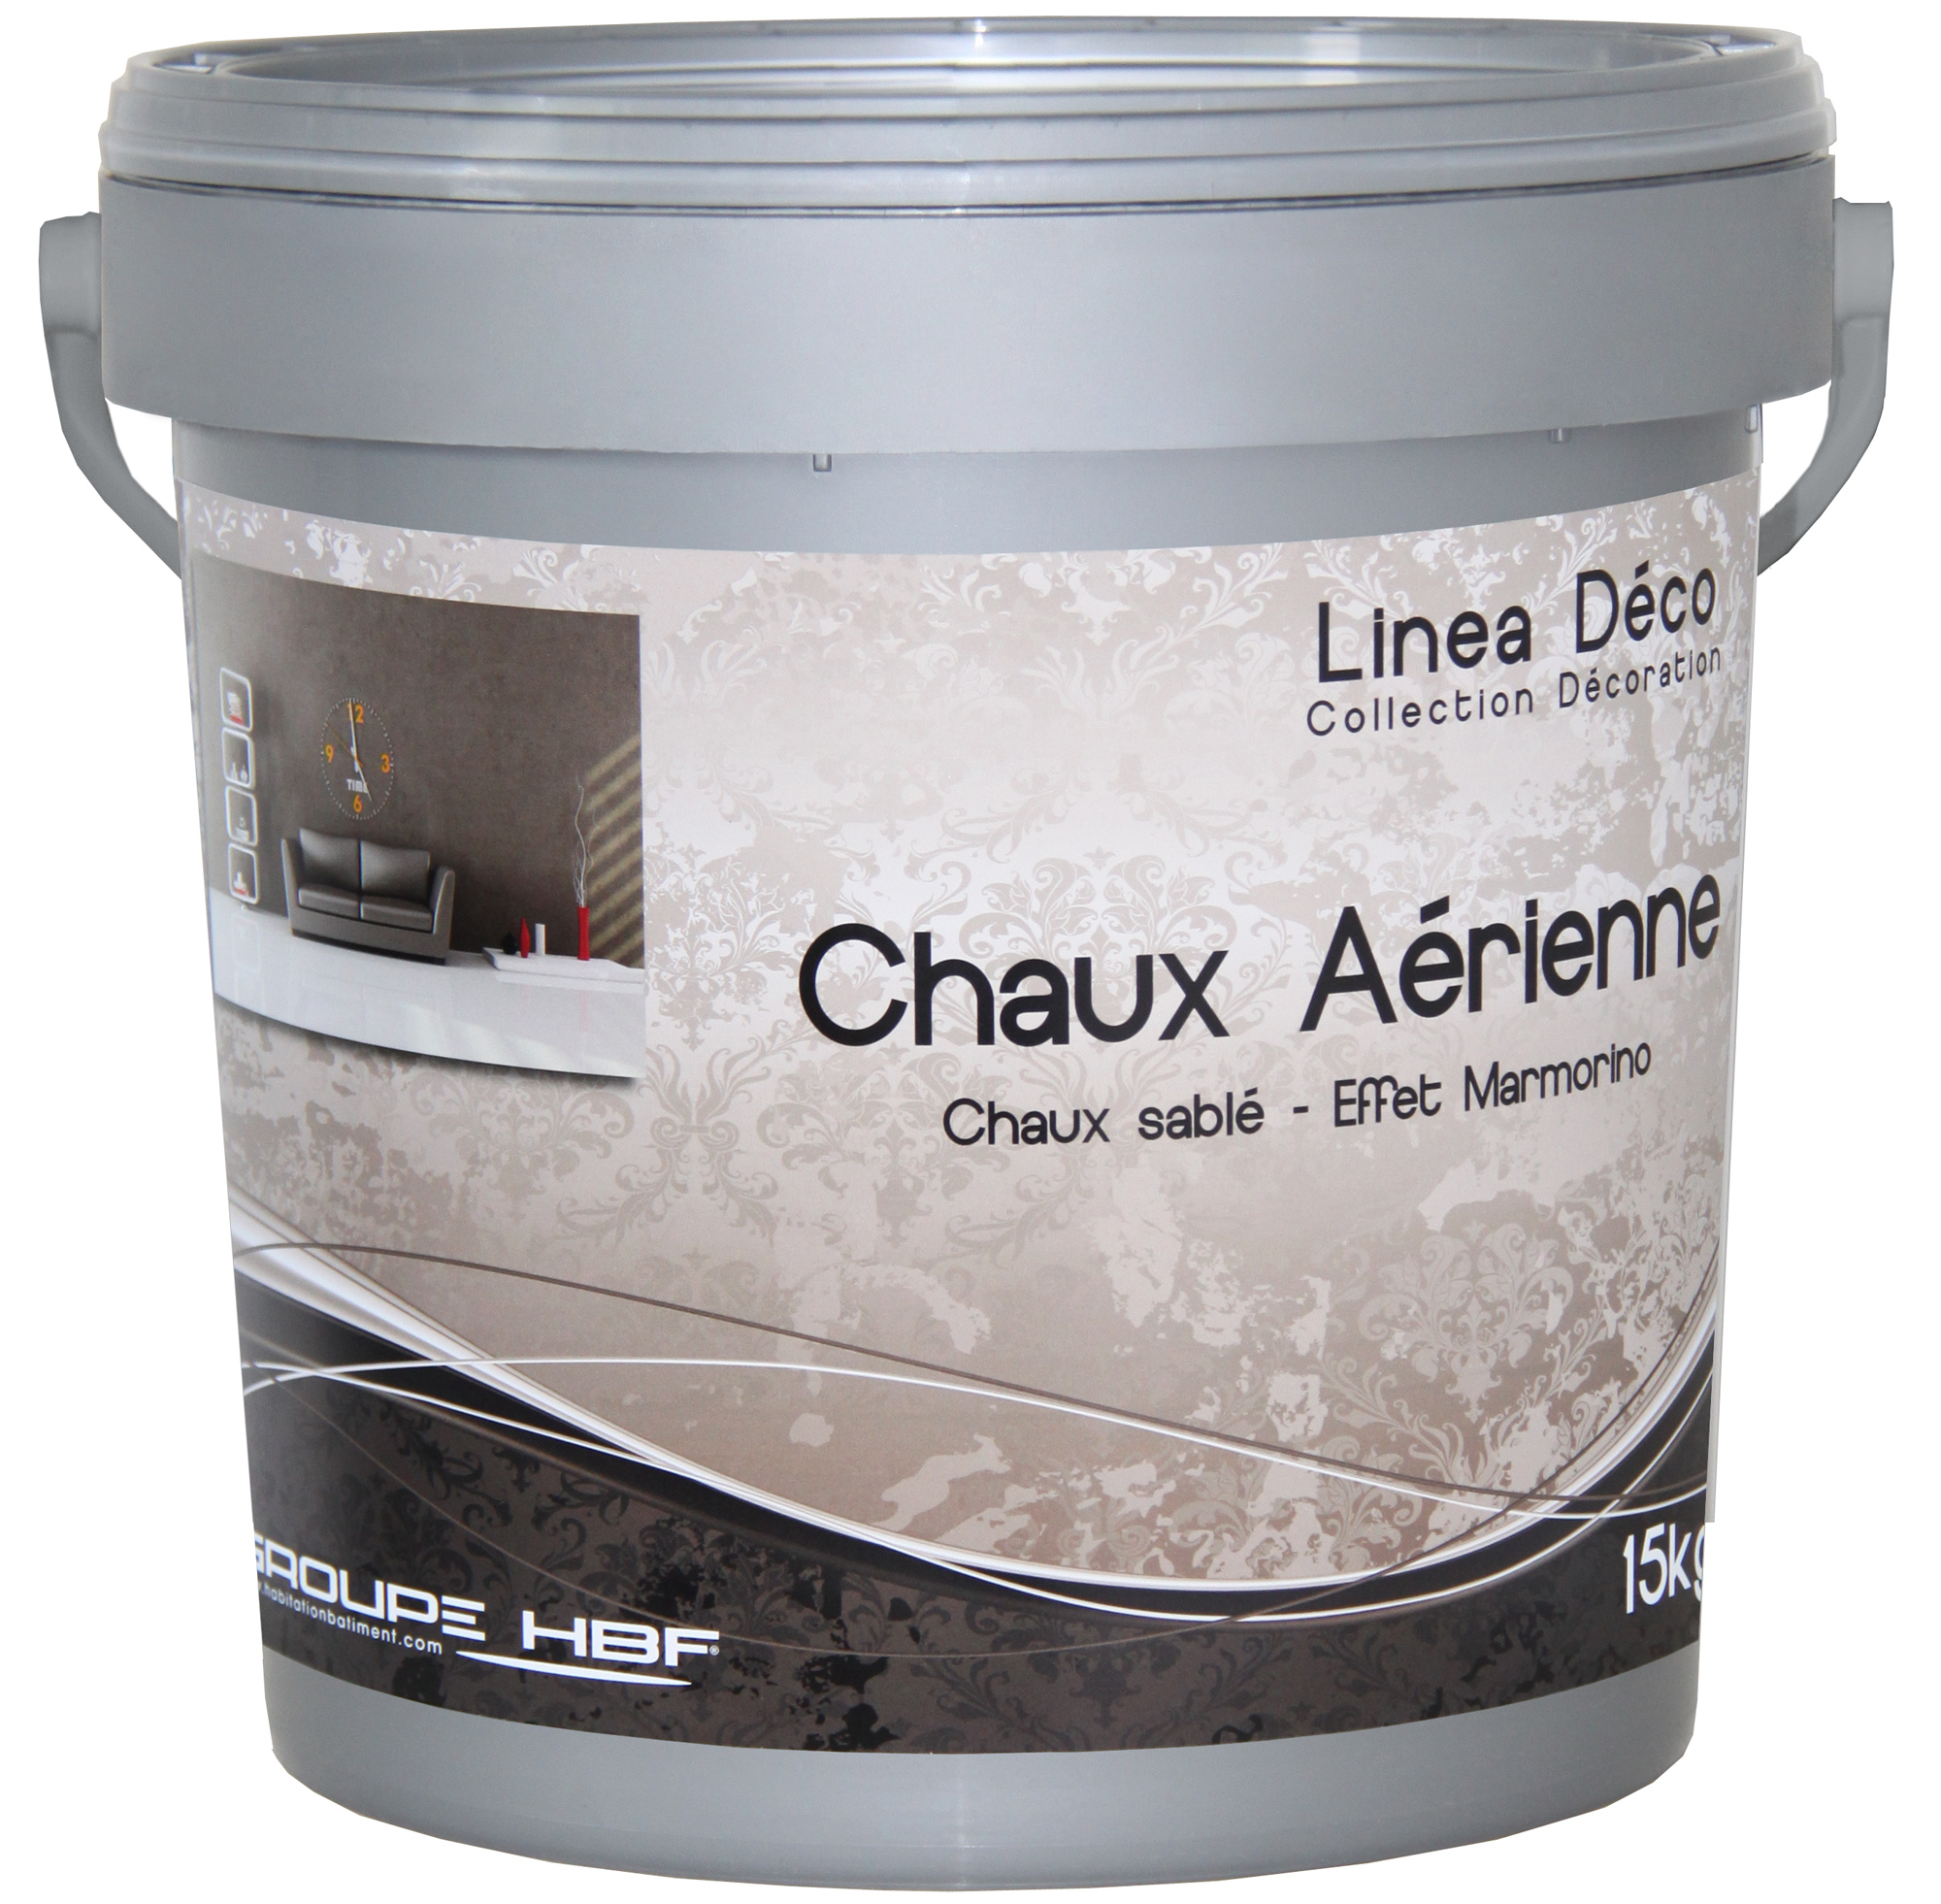 chaux aerienne linea deco 5 kg bb fabrication sas cpp lopez peintures. Black Bedroom Furniture Sets. Home Design Ideas